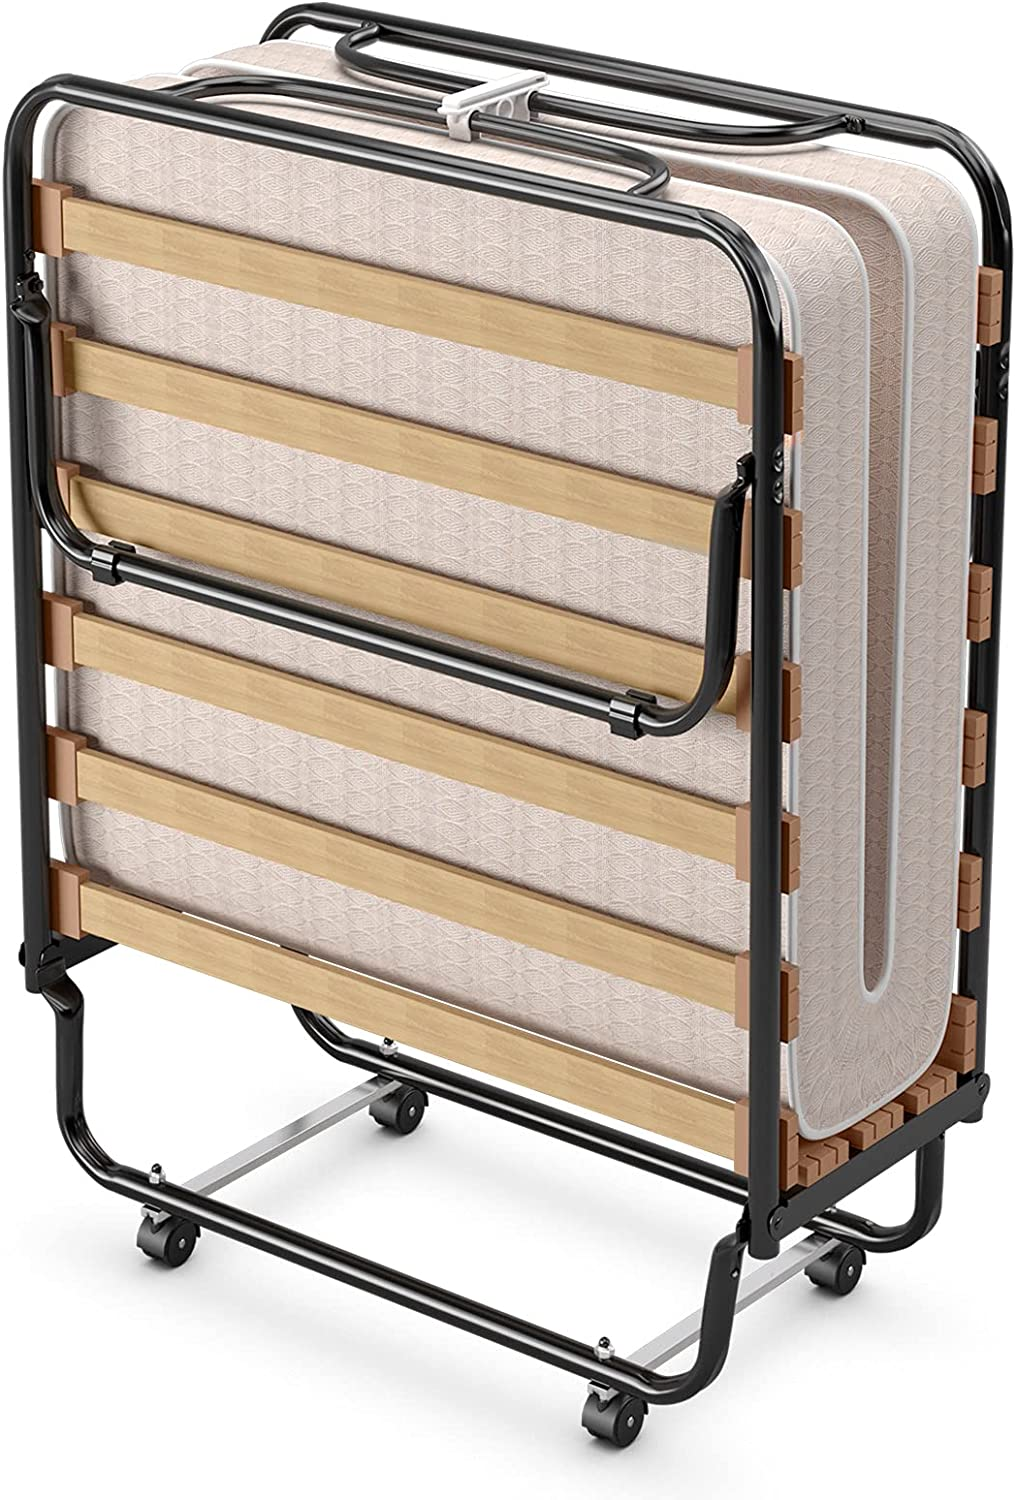 GOFLAME Rollaway Folding Bed with Soft Foam Mattress, Portable Guest Bed Cot Size with Metal Frame for Adults, Sleeper Bed with for Spare Bedroom and Office, Made in Italy (Beige)